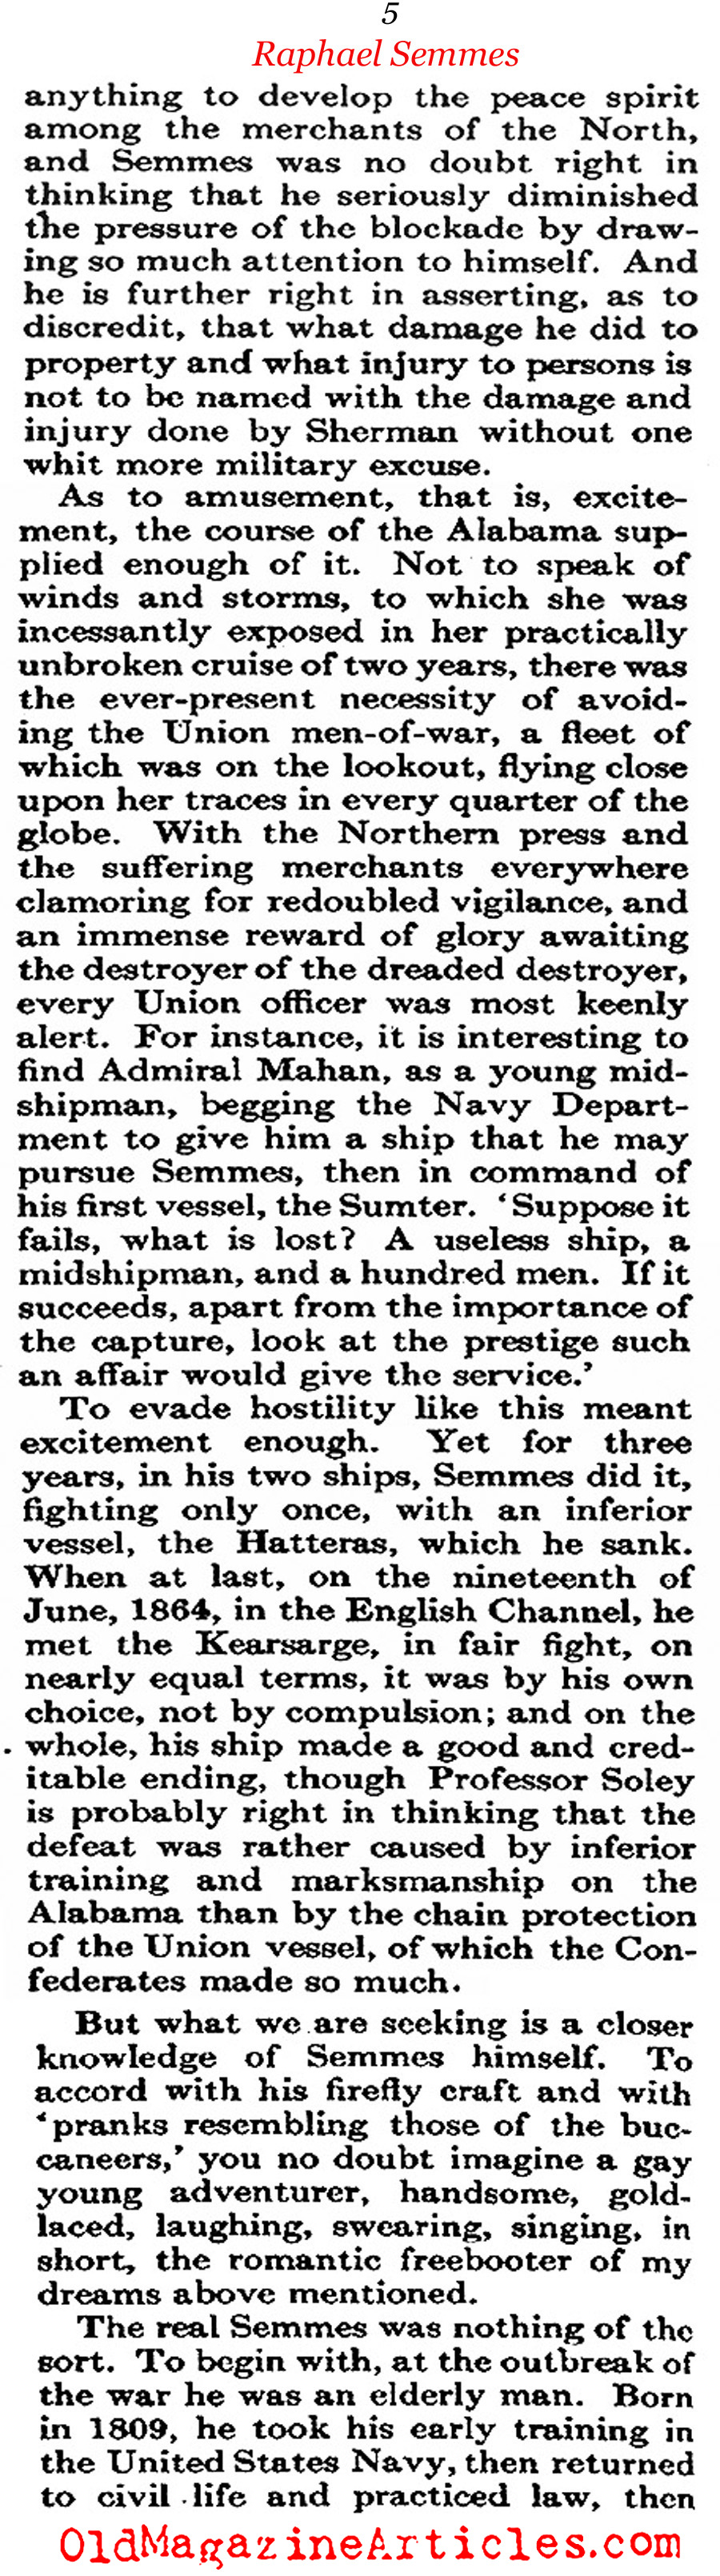 Civil War Pirate Raphael Semmes (Atlantic Monthly, 1913)